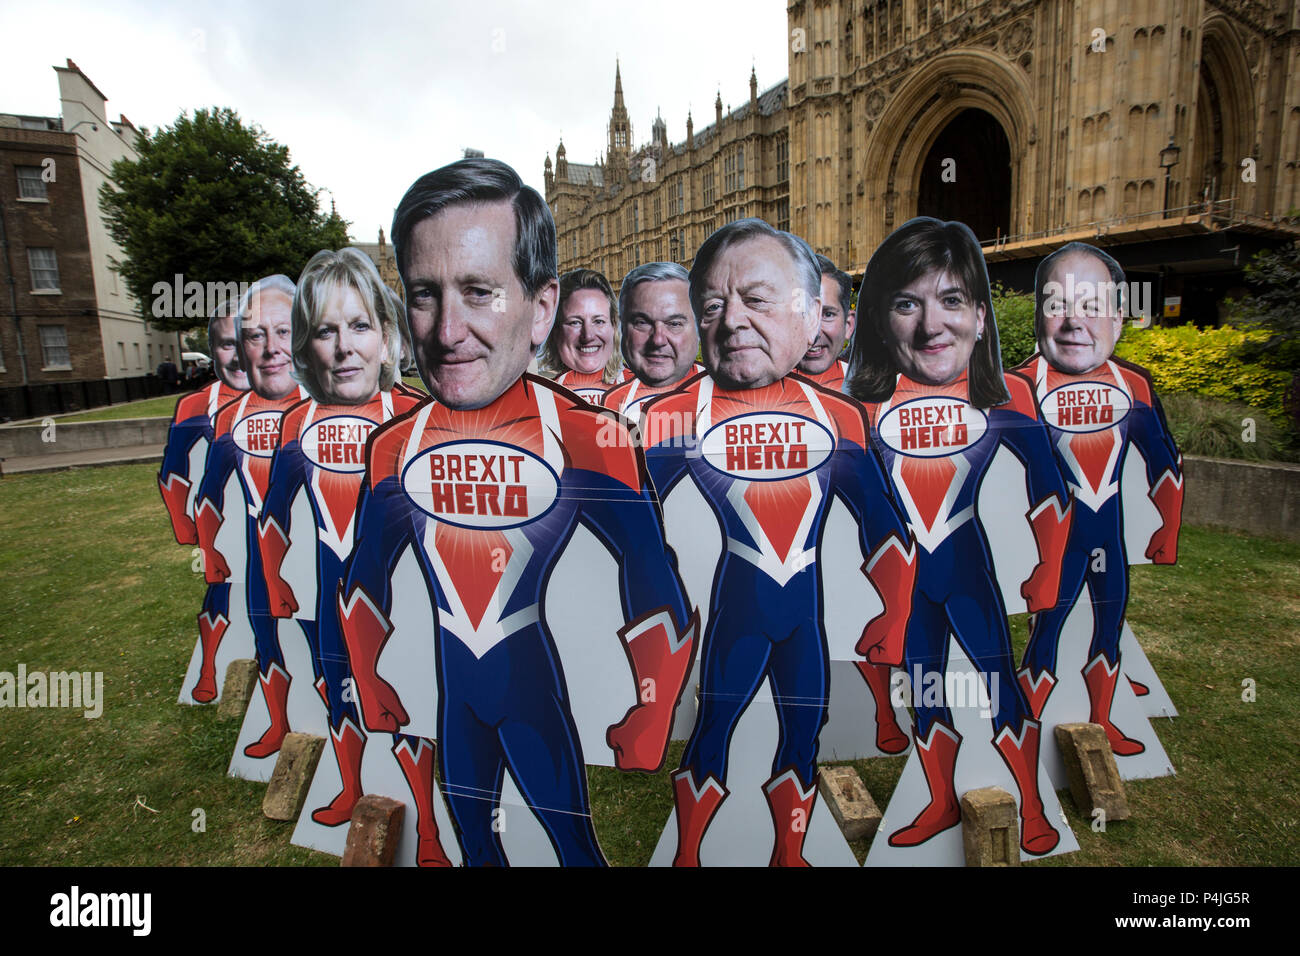 15 superhero cutouts with faces of key Tory rebel MPs outside Parliament ahead of Wednesday's Commons vote to give Parliament a vote on Brexit. - Stock Image